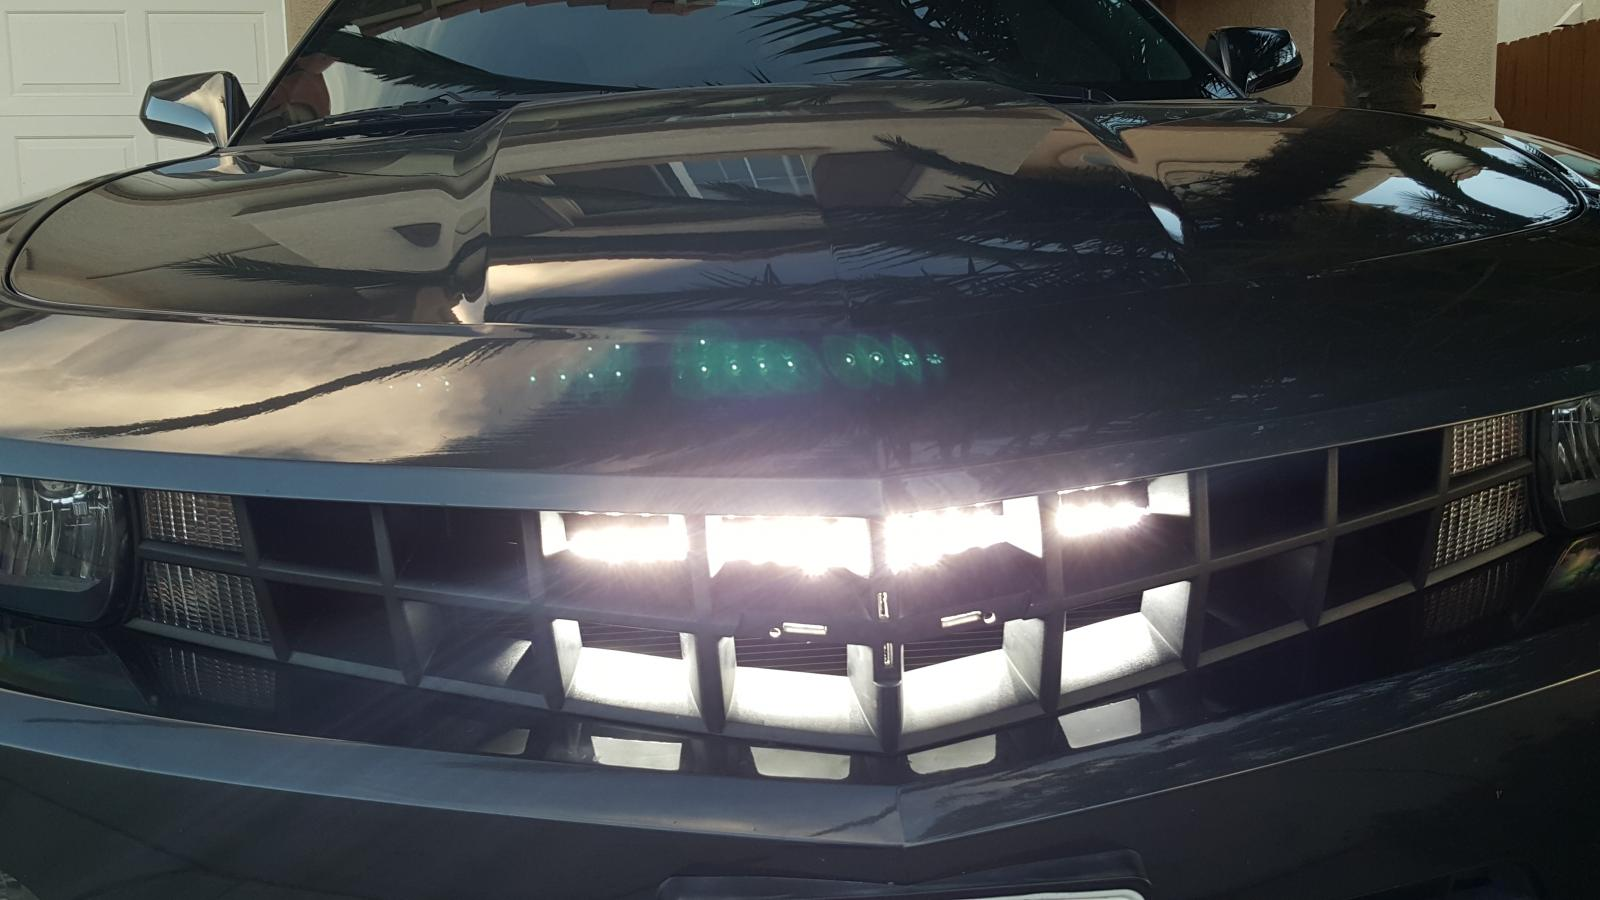 Hidden light bar camaro5 chevy camaro forum camaro zl1 ss and attached images aloadofball Image collections